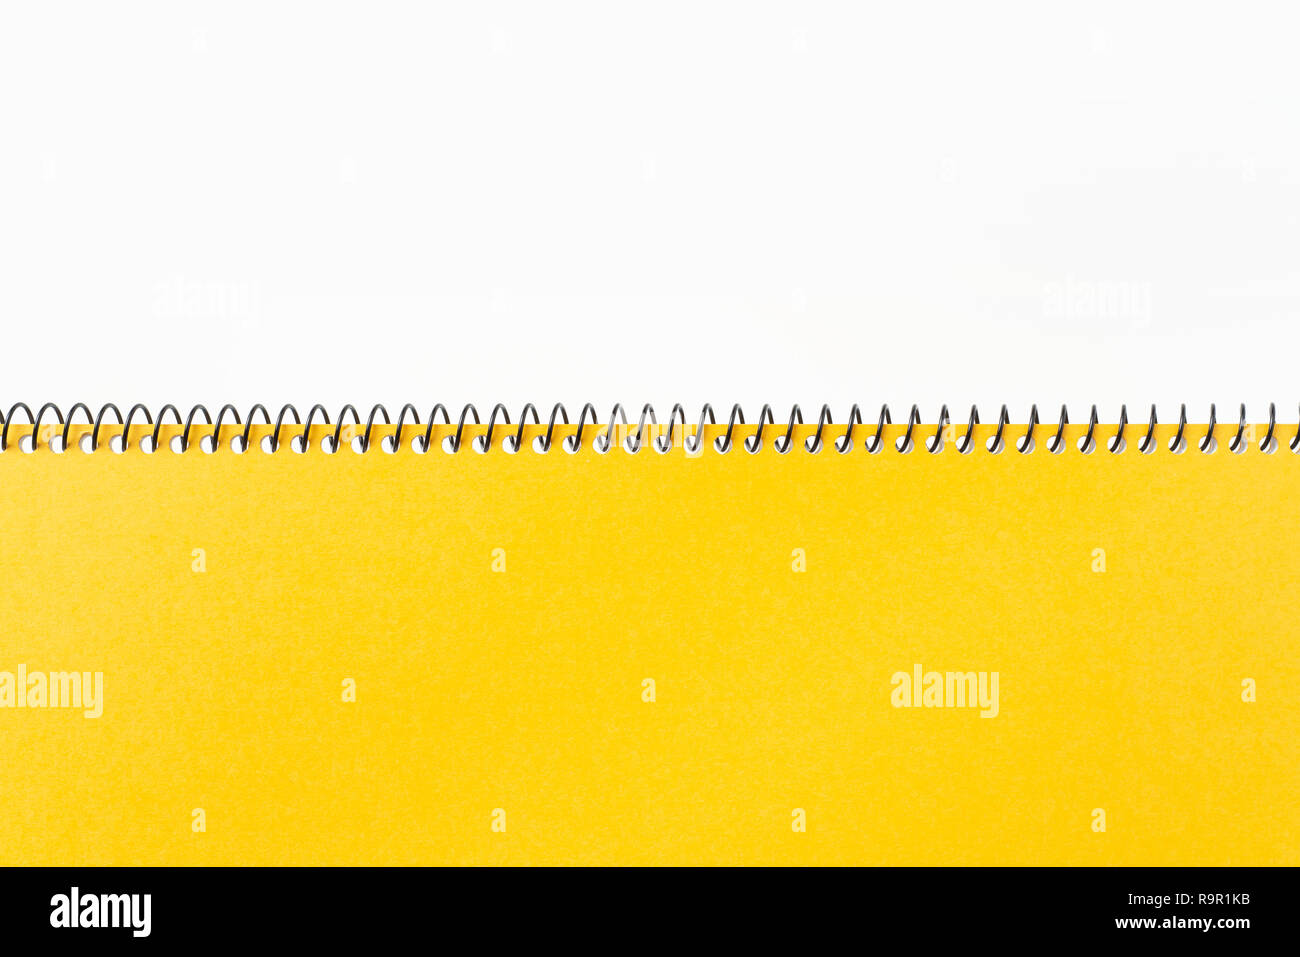 Design concept - Top view of yellow spiral notebook with geometric layout and vintage style for design mockup Stock Photo